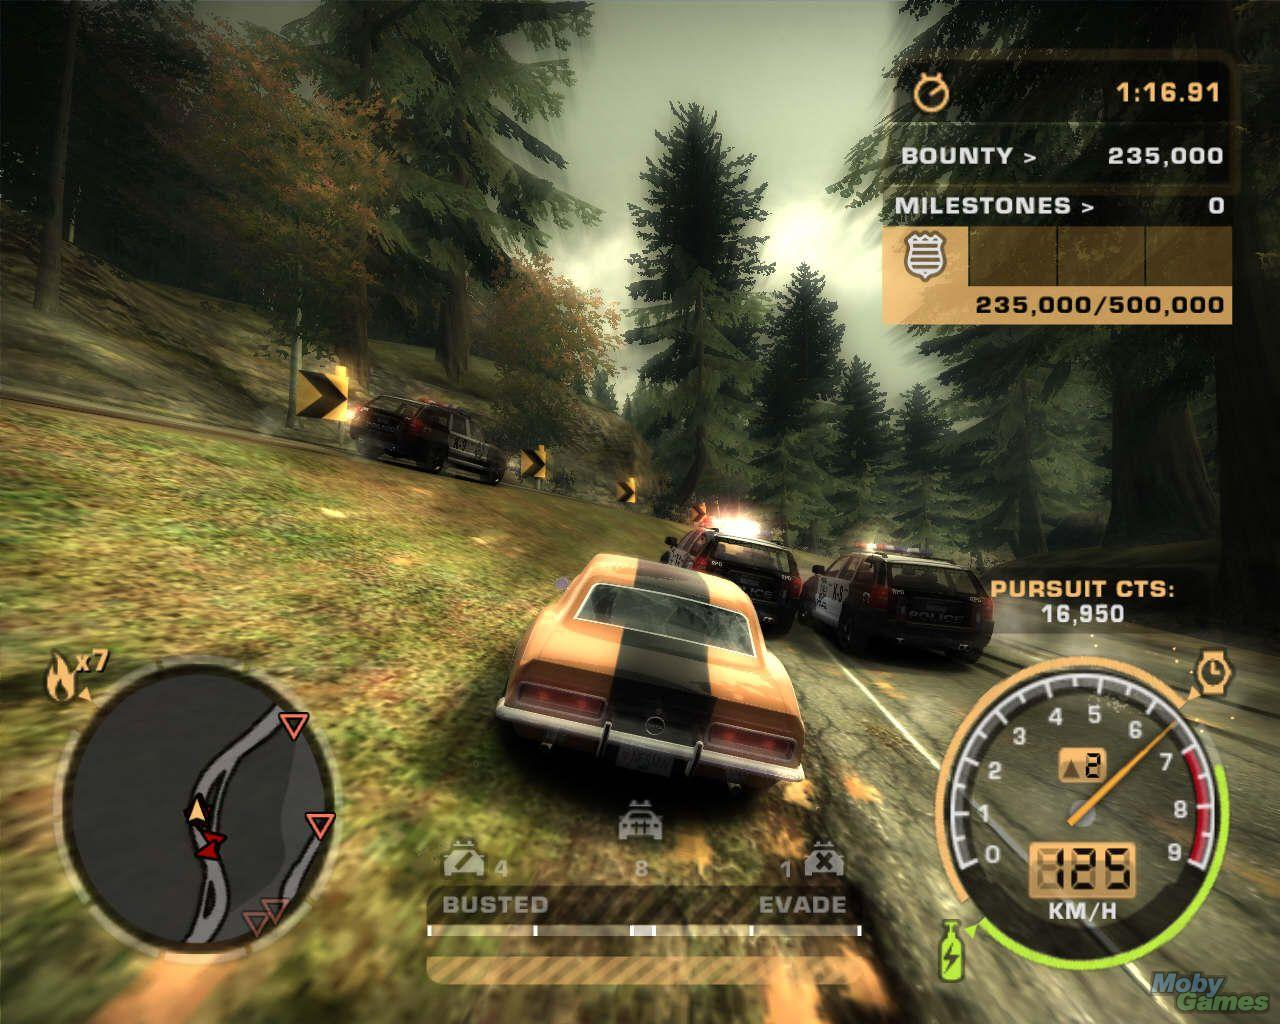 download nfs mw black edition highly compressed